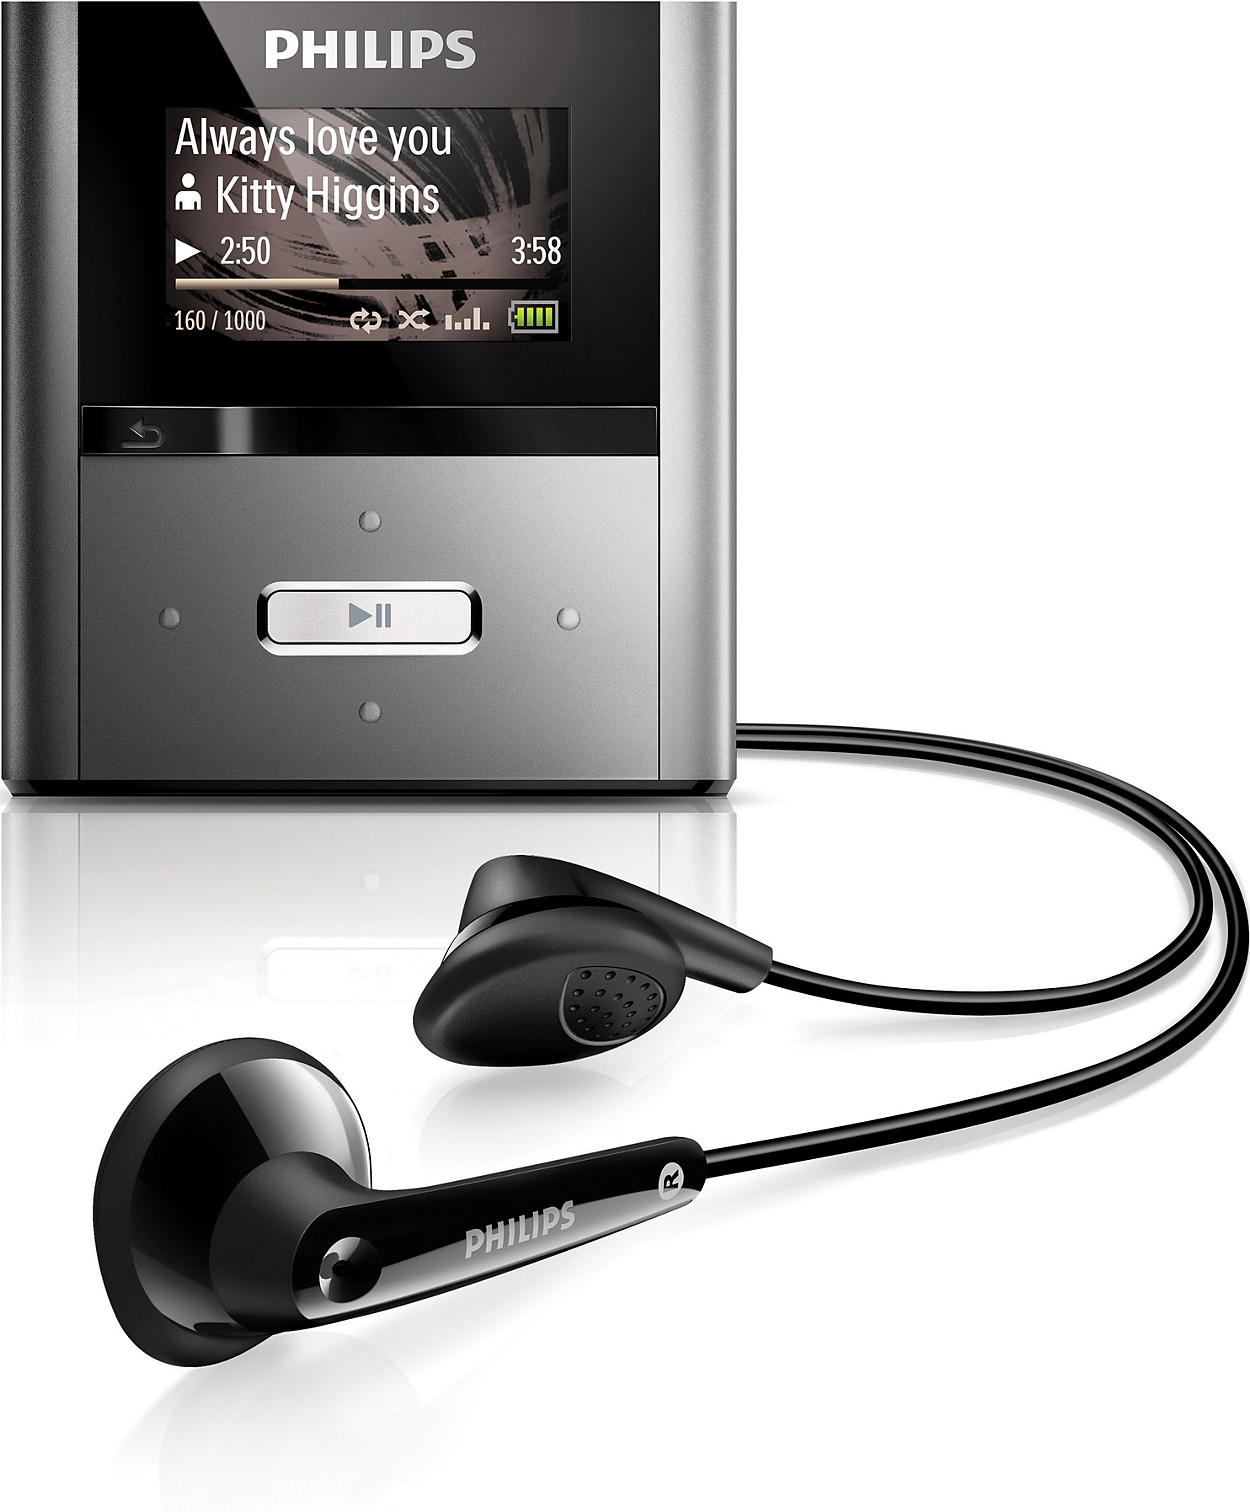 mp3 player sa2rga04ks 37 philips. Black Bedroom Furniture Sets. Home Design Ideas